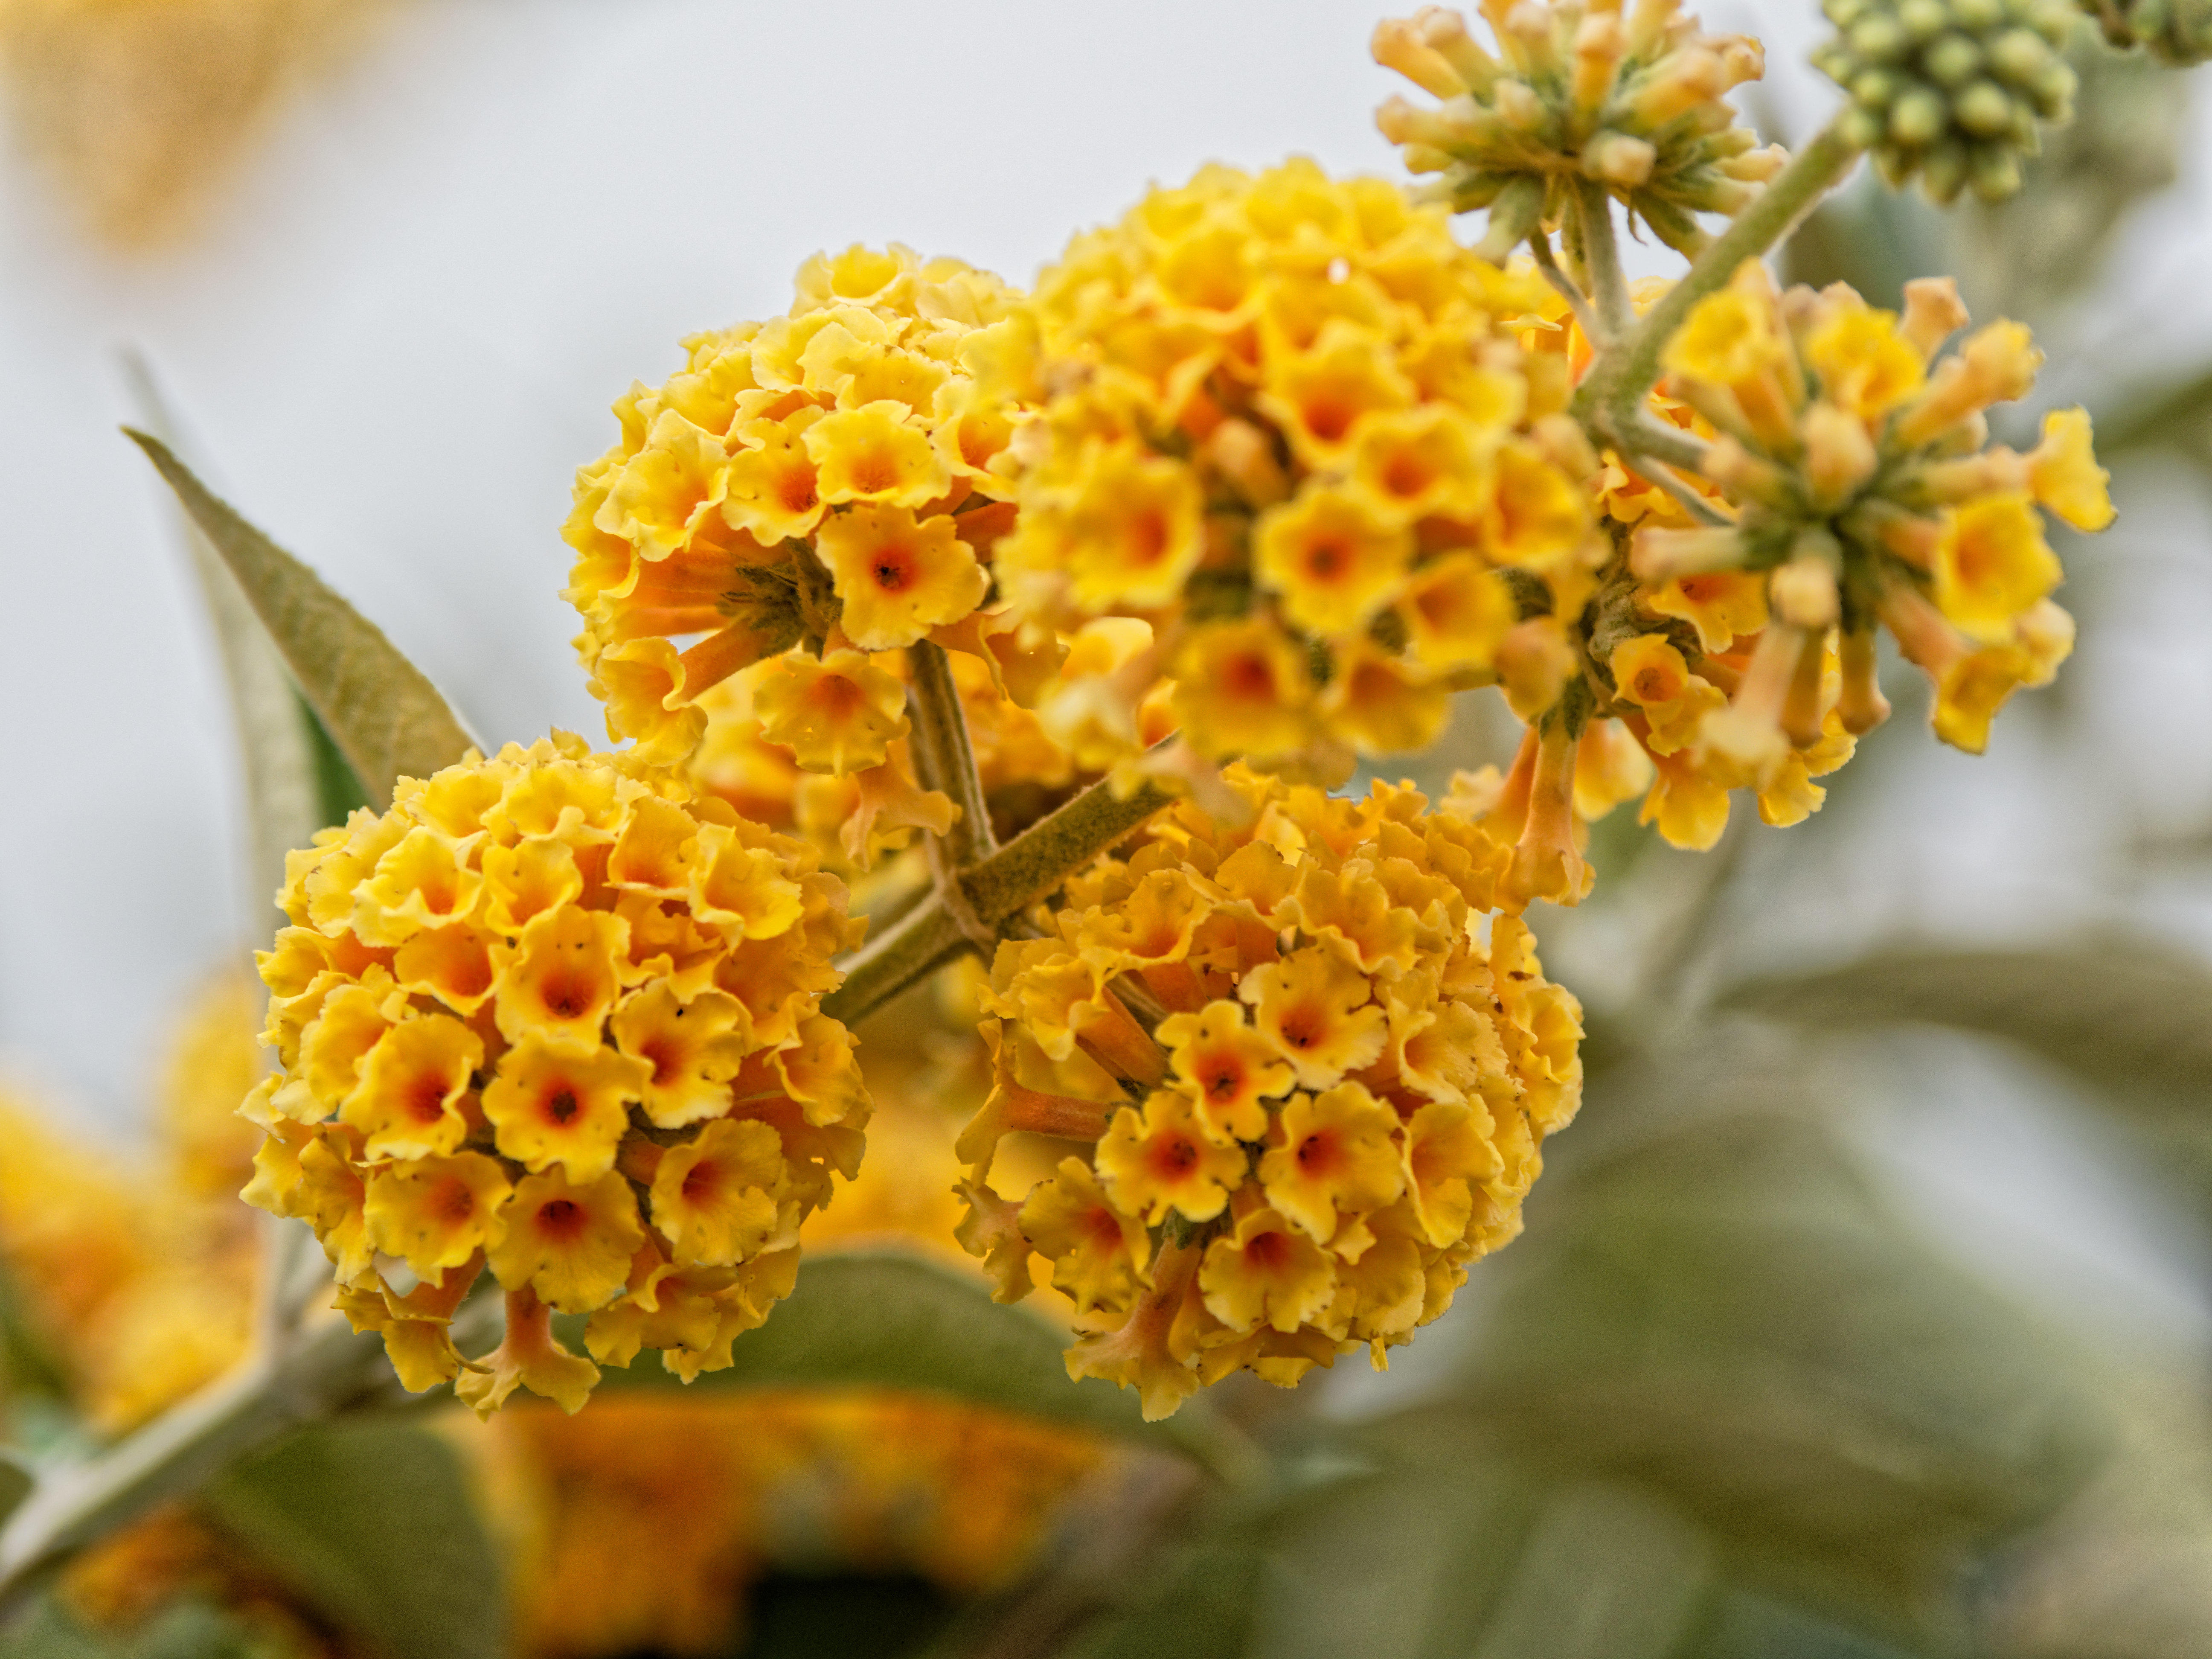 This should be Buddleja-5.jpeg.  Is it missing?